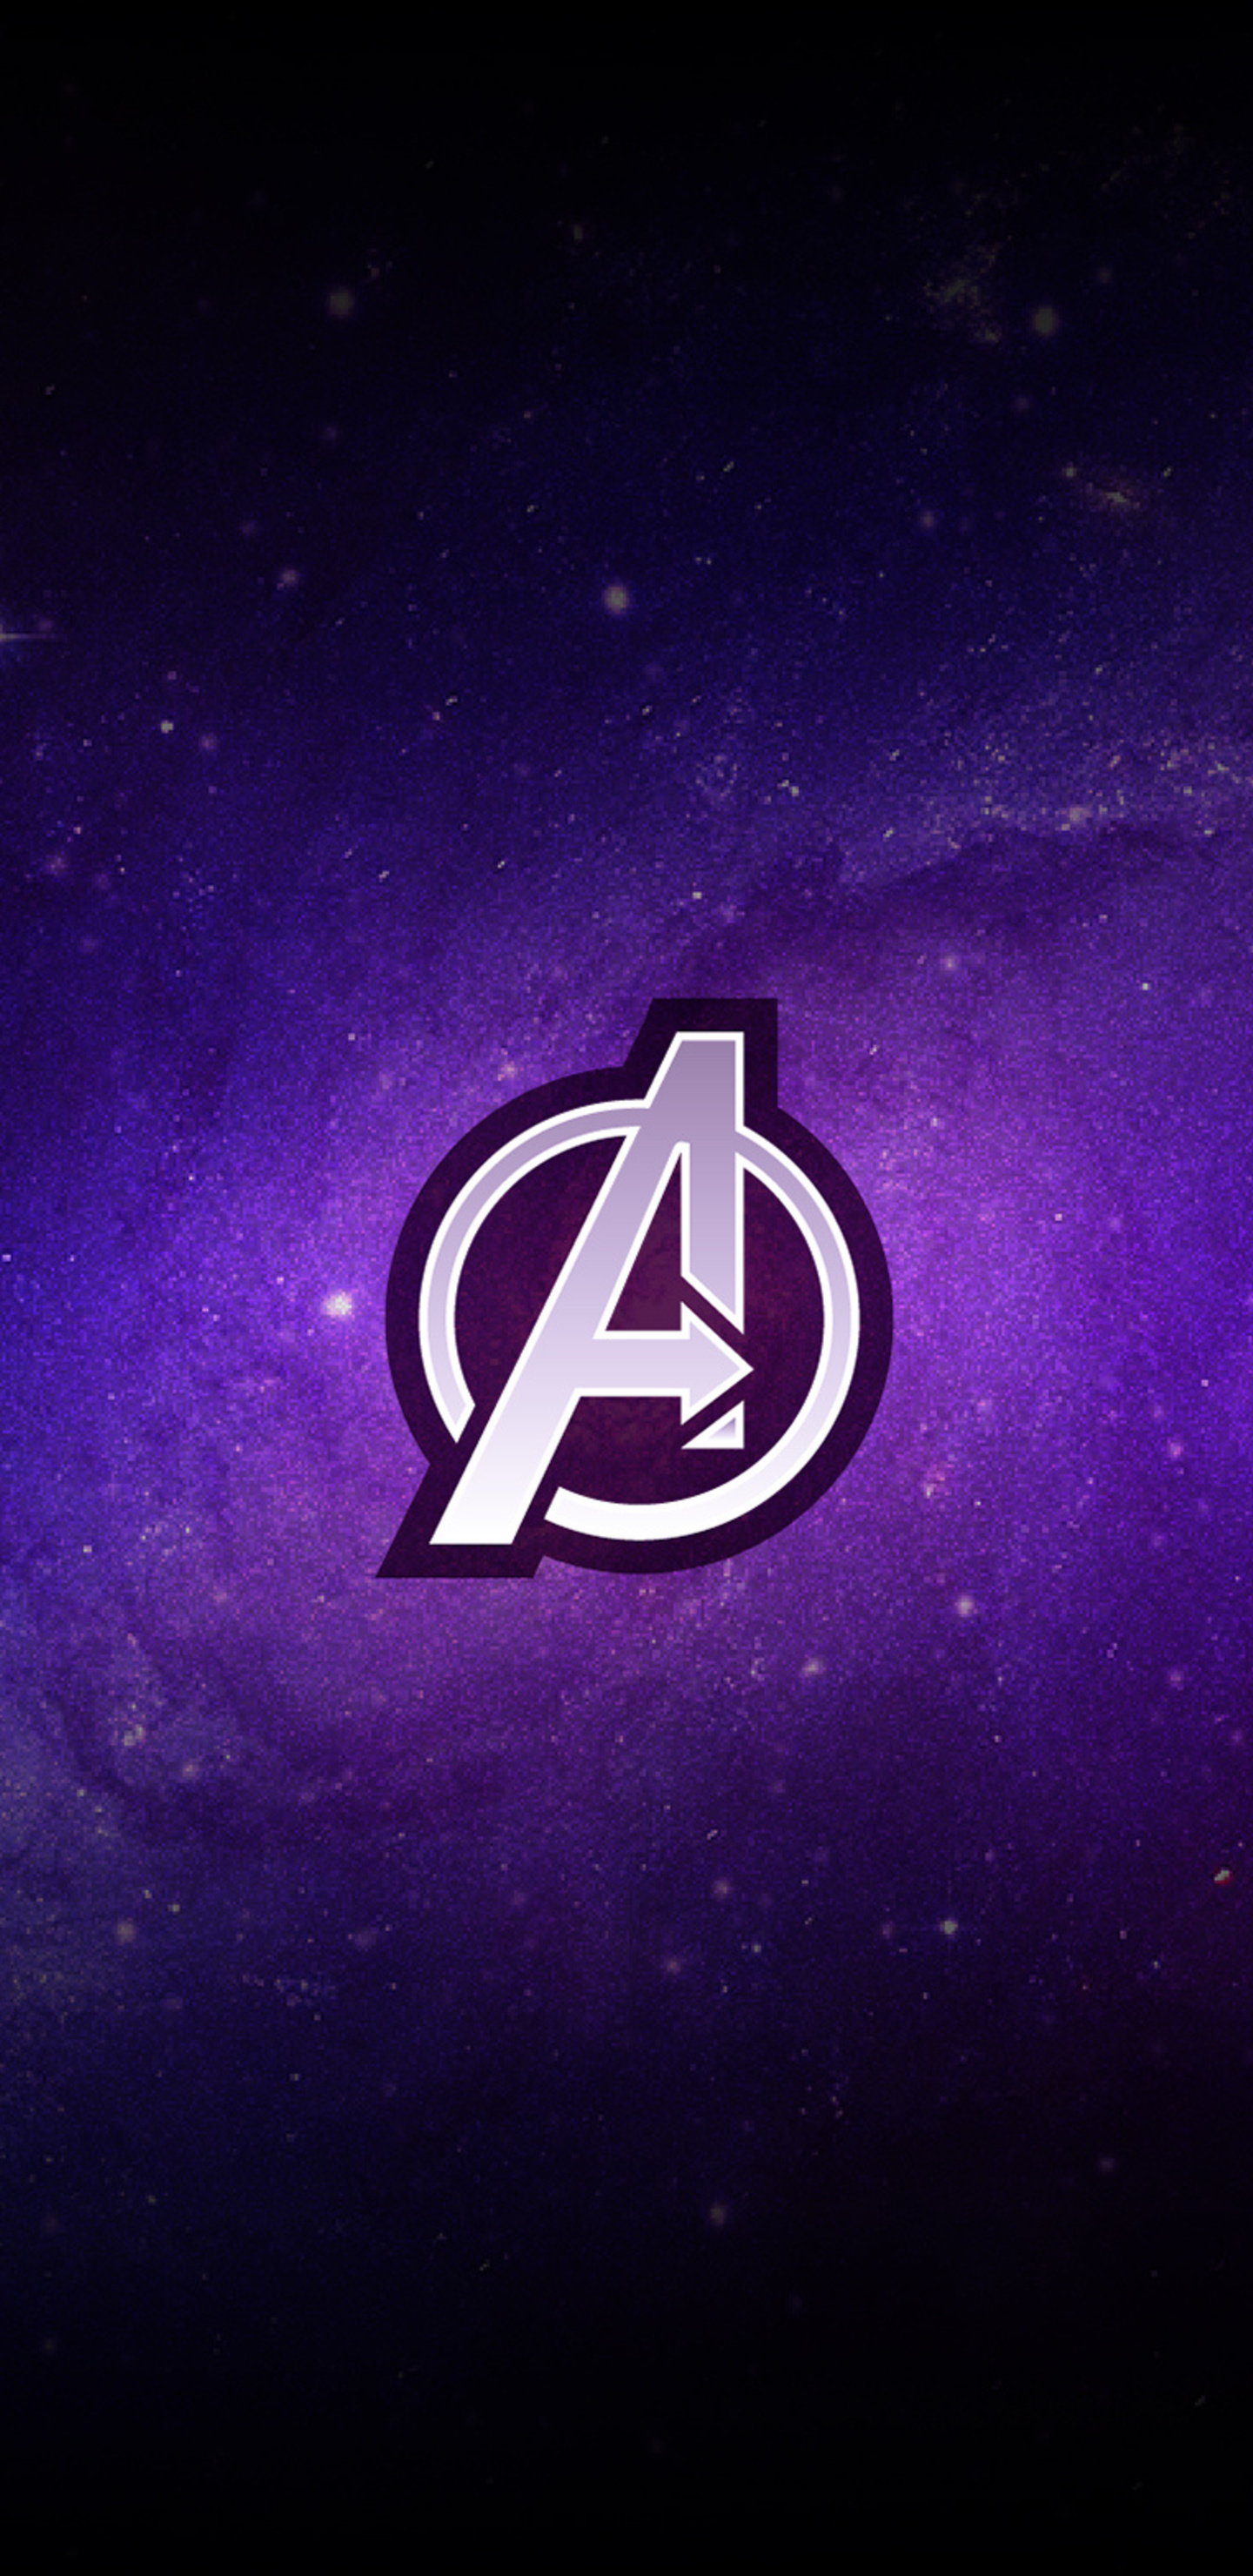 1440x2960 Avengers Logo Samsung Galaxy Note 9 8 S9 S8 S8 Qhd Hd 4k Wallpapers Images Backgrounds Photos And Pictures